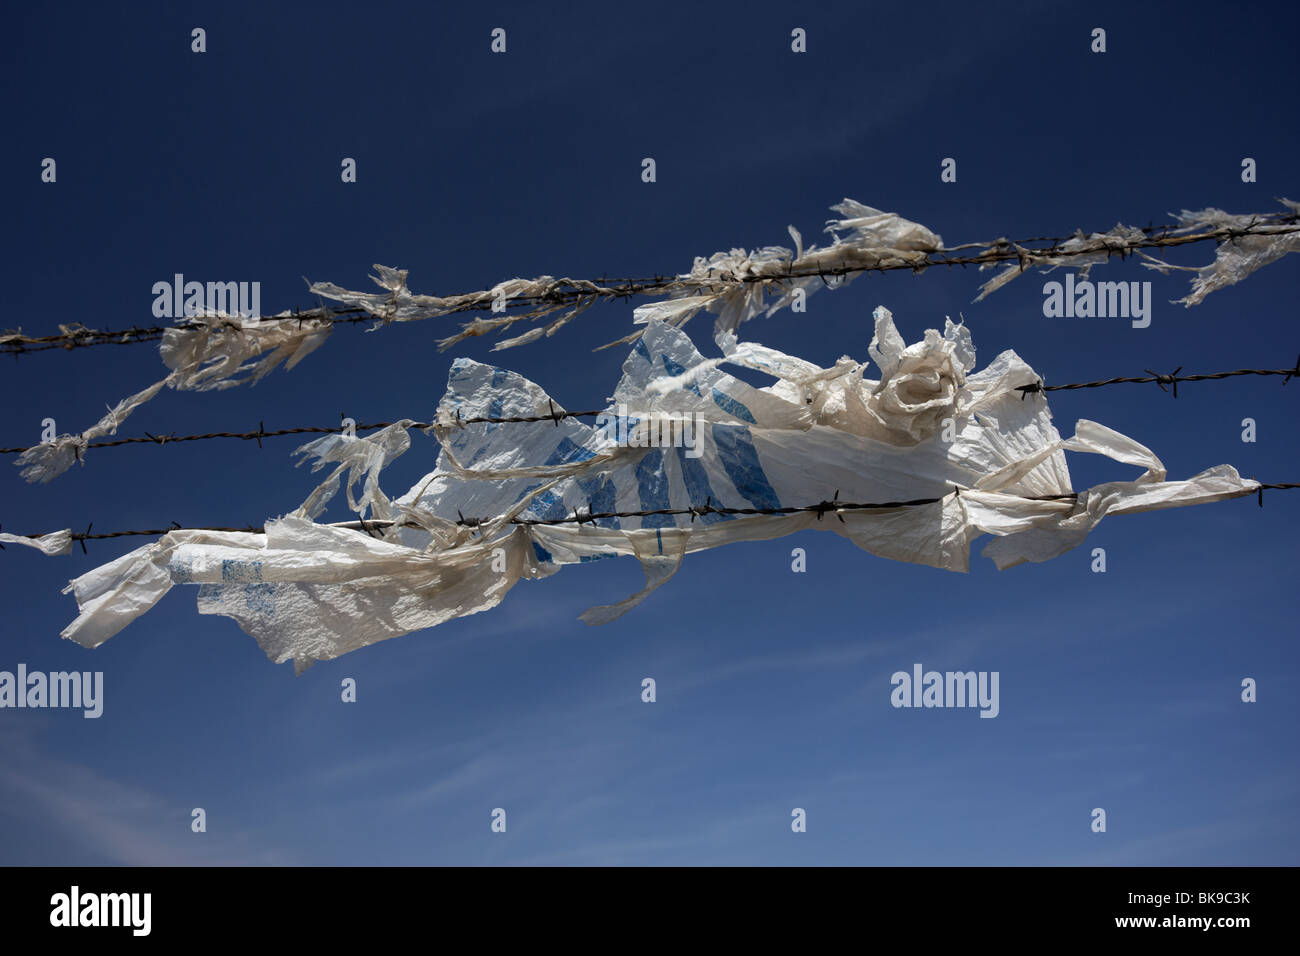 old discarded plastic carrier bag rotting and torn blowing in the wind caught by barbed wire fence Stock Photo